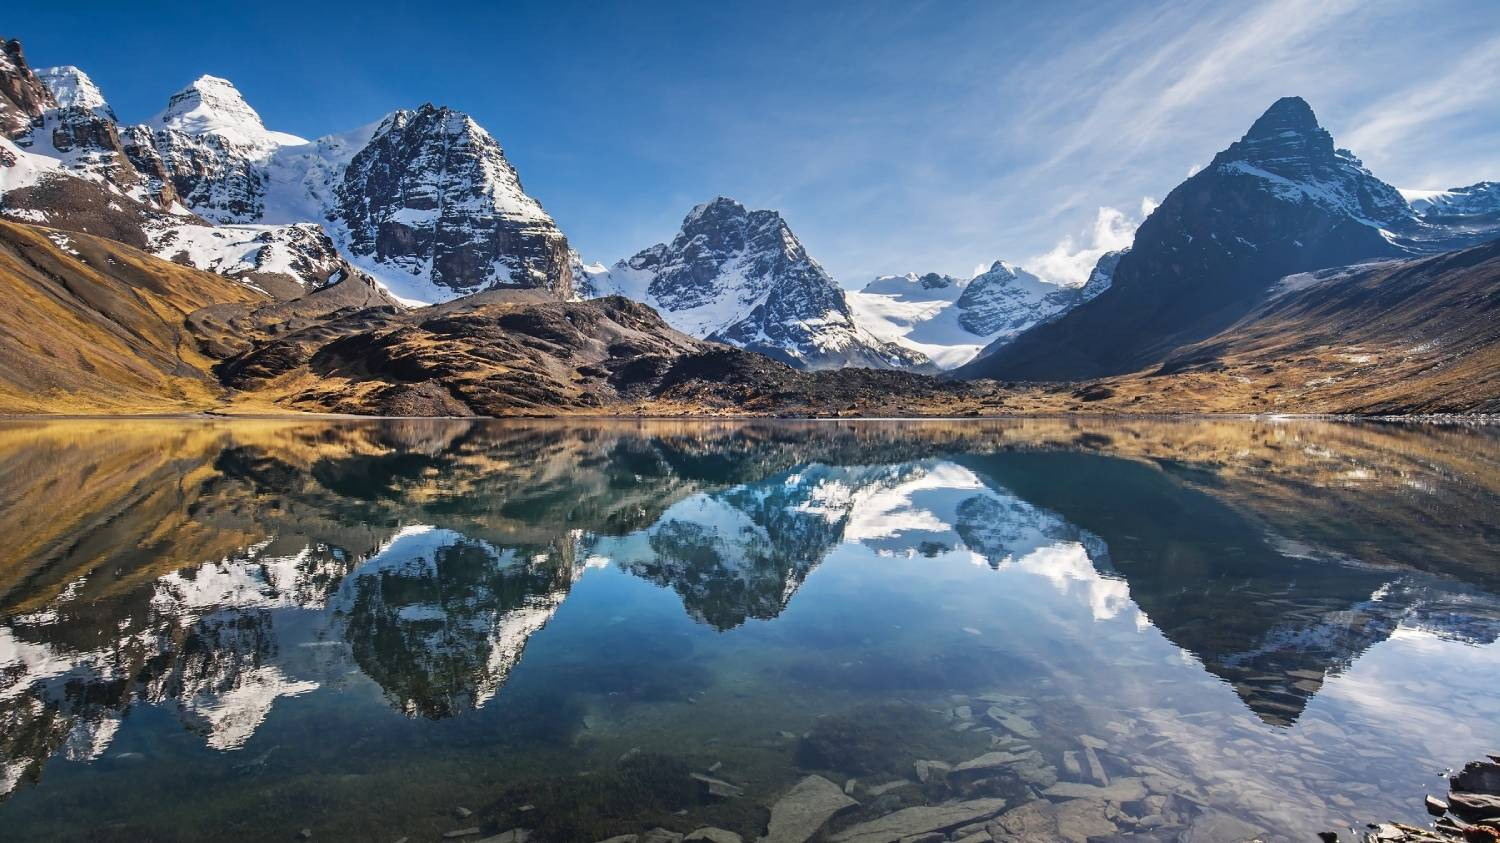 Bolivia - The Best Countries To Visit In South America